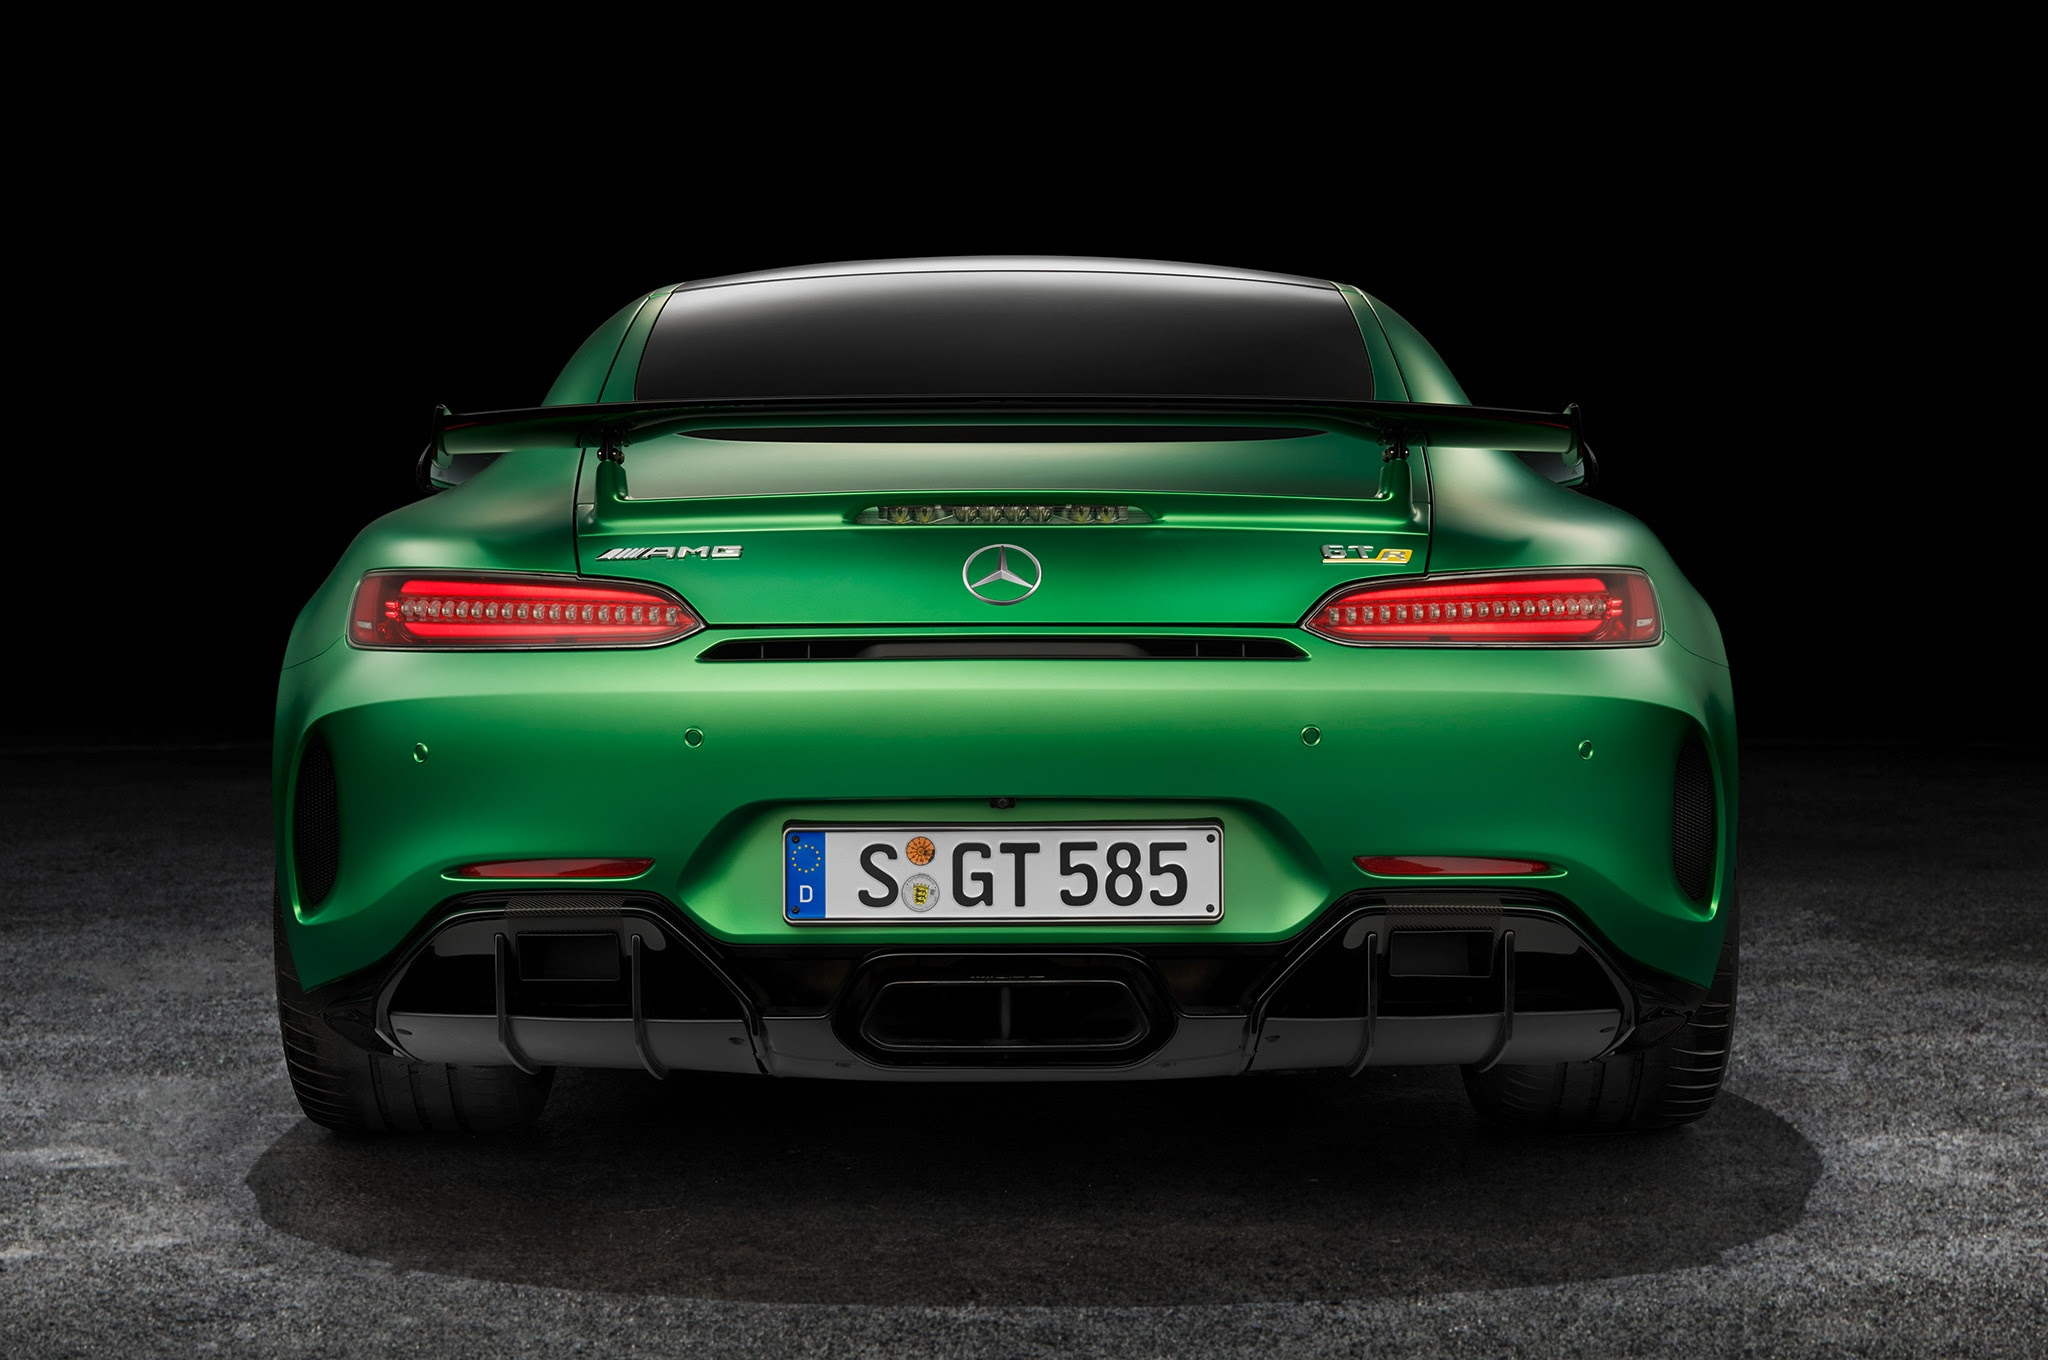 15 Things You Didn't Know About the 2018 Mercedes-AMG GT R